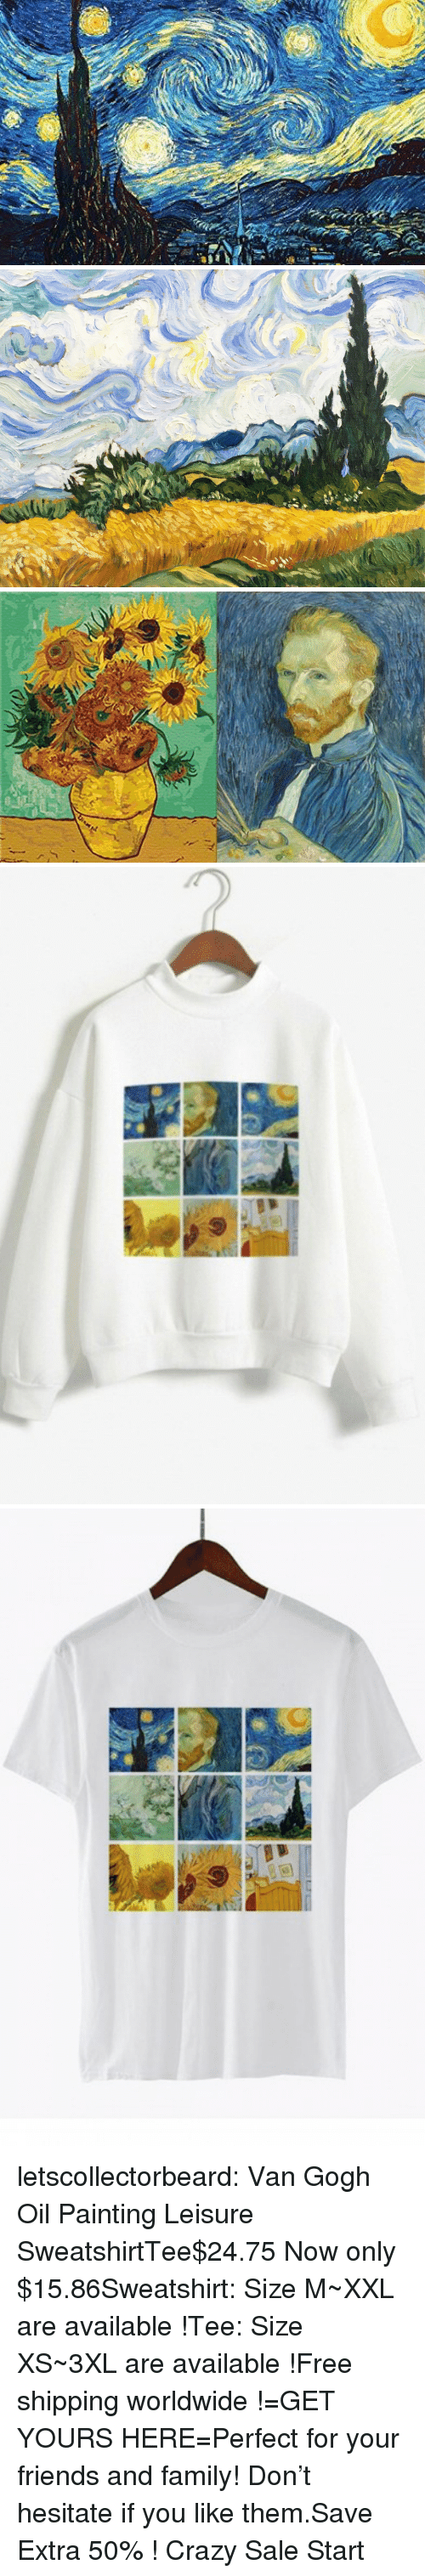 Crazy, Family, and Friends: letscollectorbeard:  Van Gogh Oil Painting Leisure SweatshirtTee$24.75 Now only $15.86Sweatshirt: Size M~XXL are available !Tee: Size XS~3XL are available !Free shipping worldwide !=GET YOURS HERE=Perfect for your friends and family! Don't hesitate if you like them.Save Extra 50% ! Crazy Sale Start